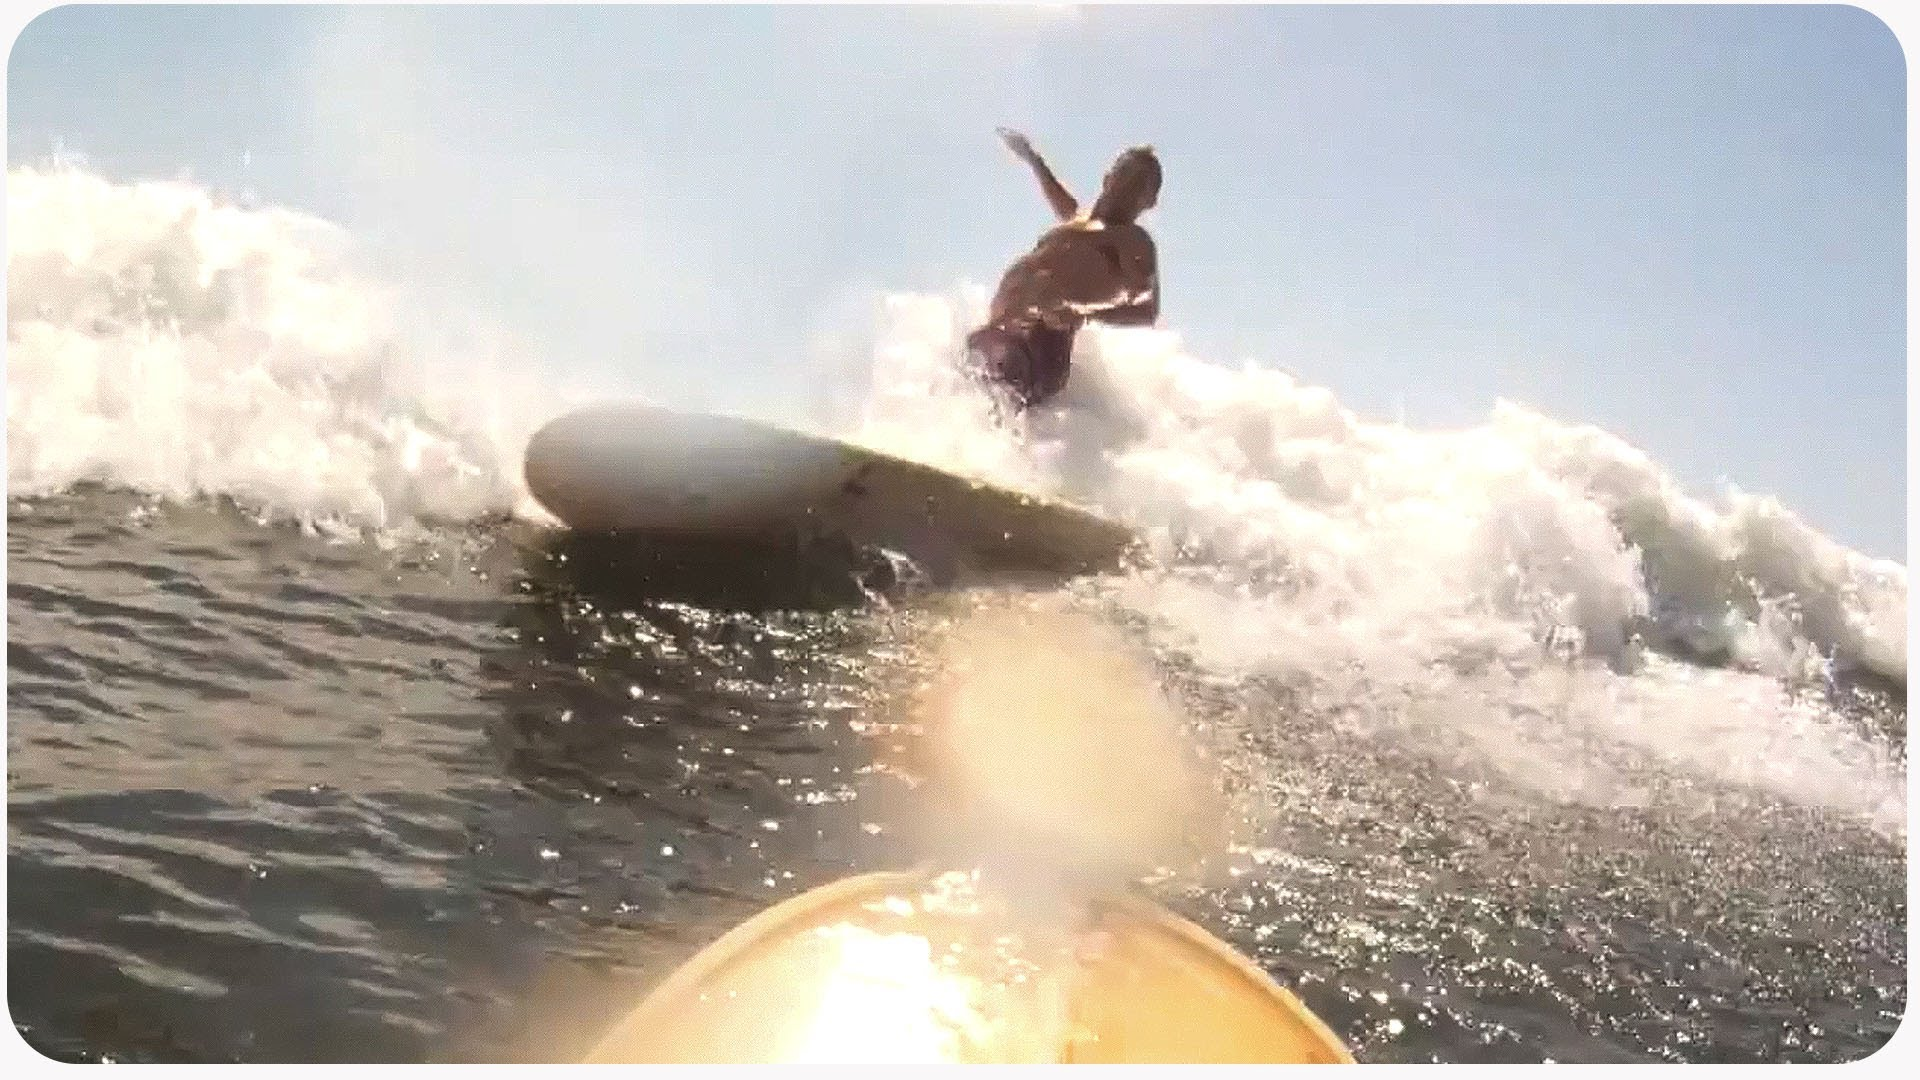 Surfing Wipeout Nearly Takes Out Surfer